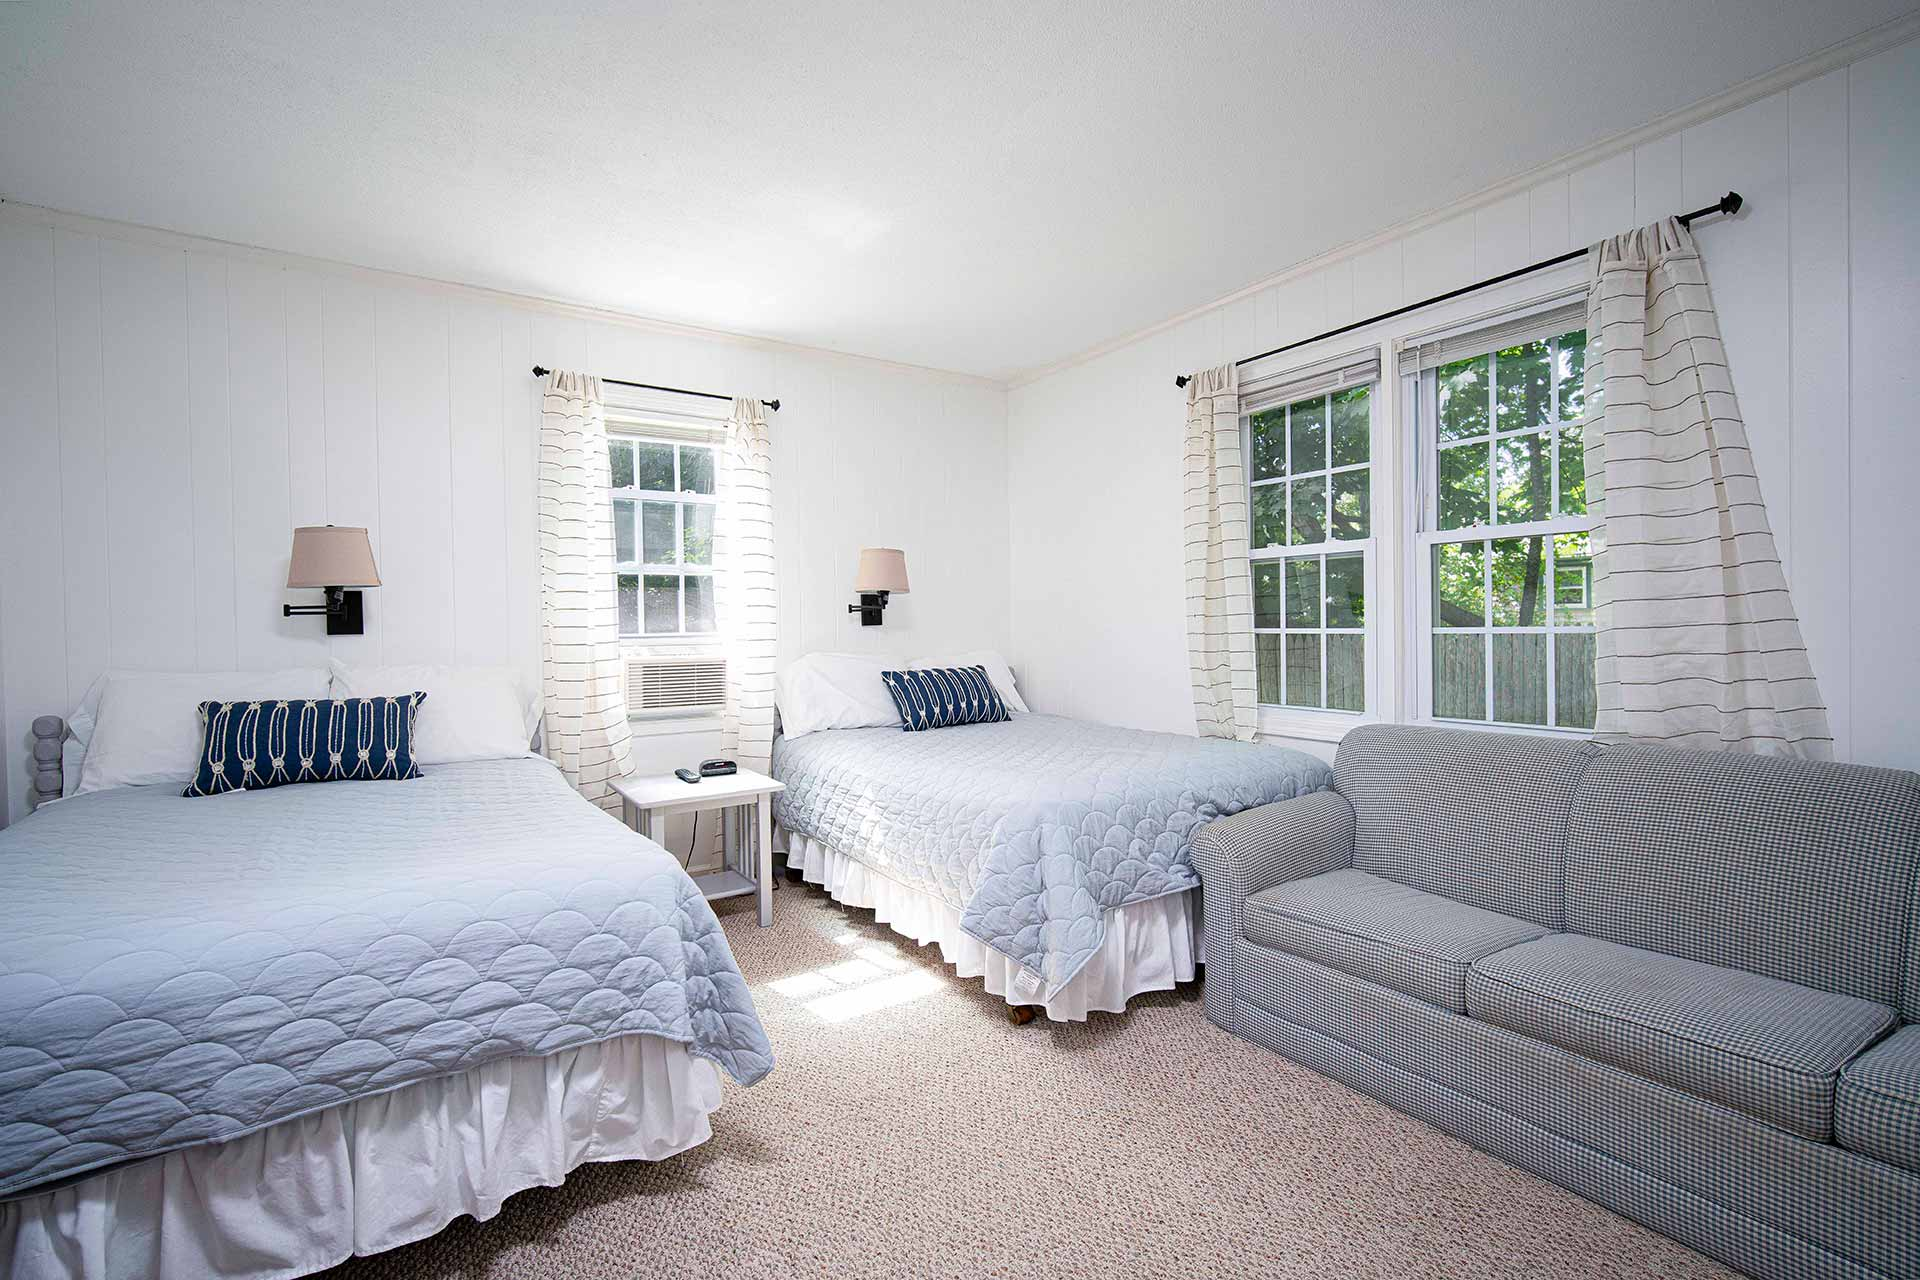 Cape Cod 1 Bedroom Vacation Rental Beds View